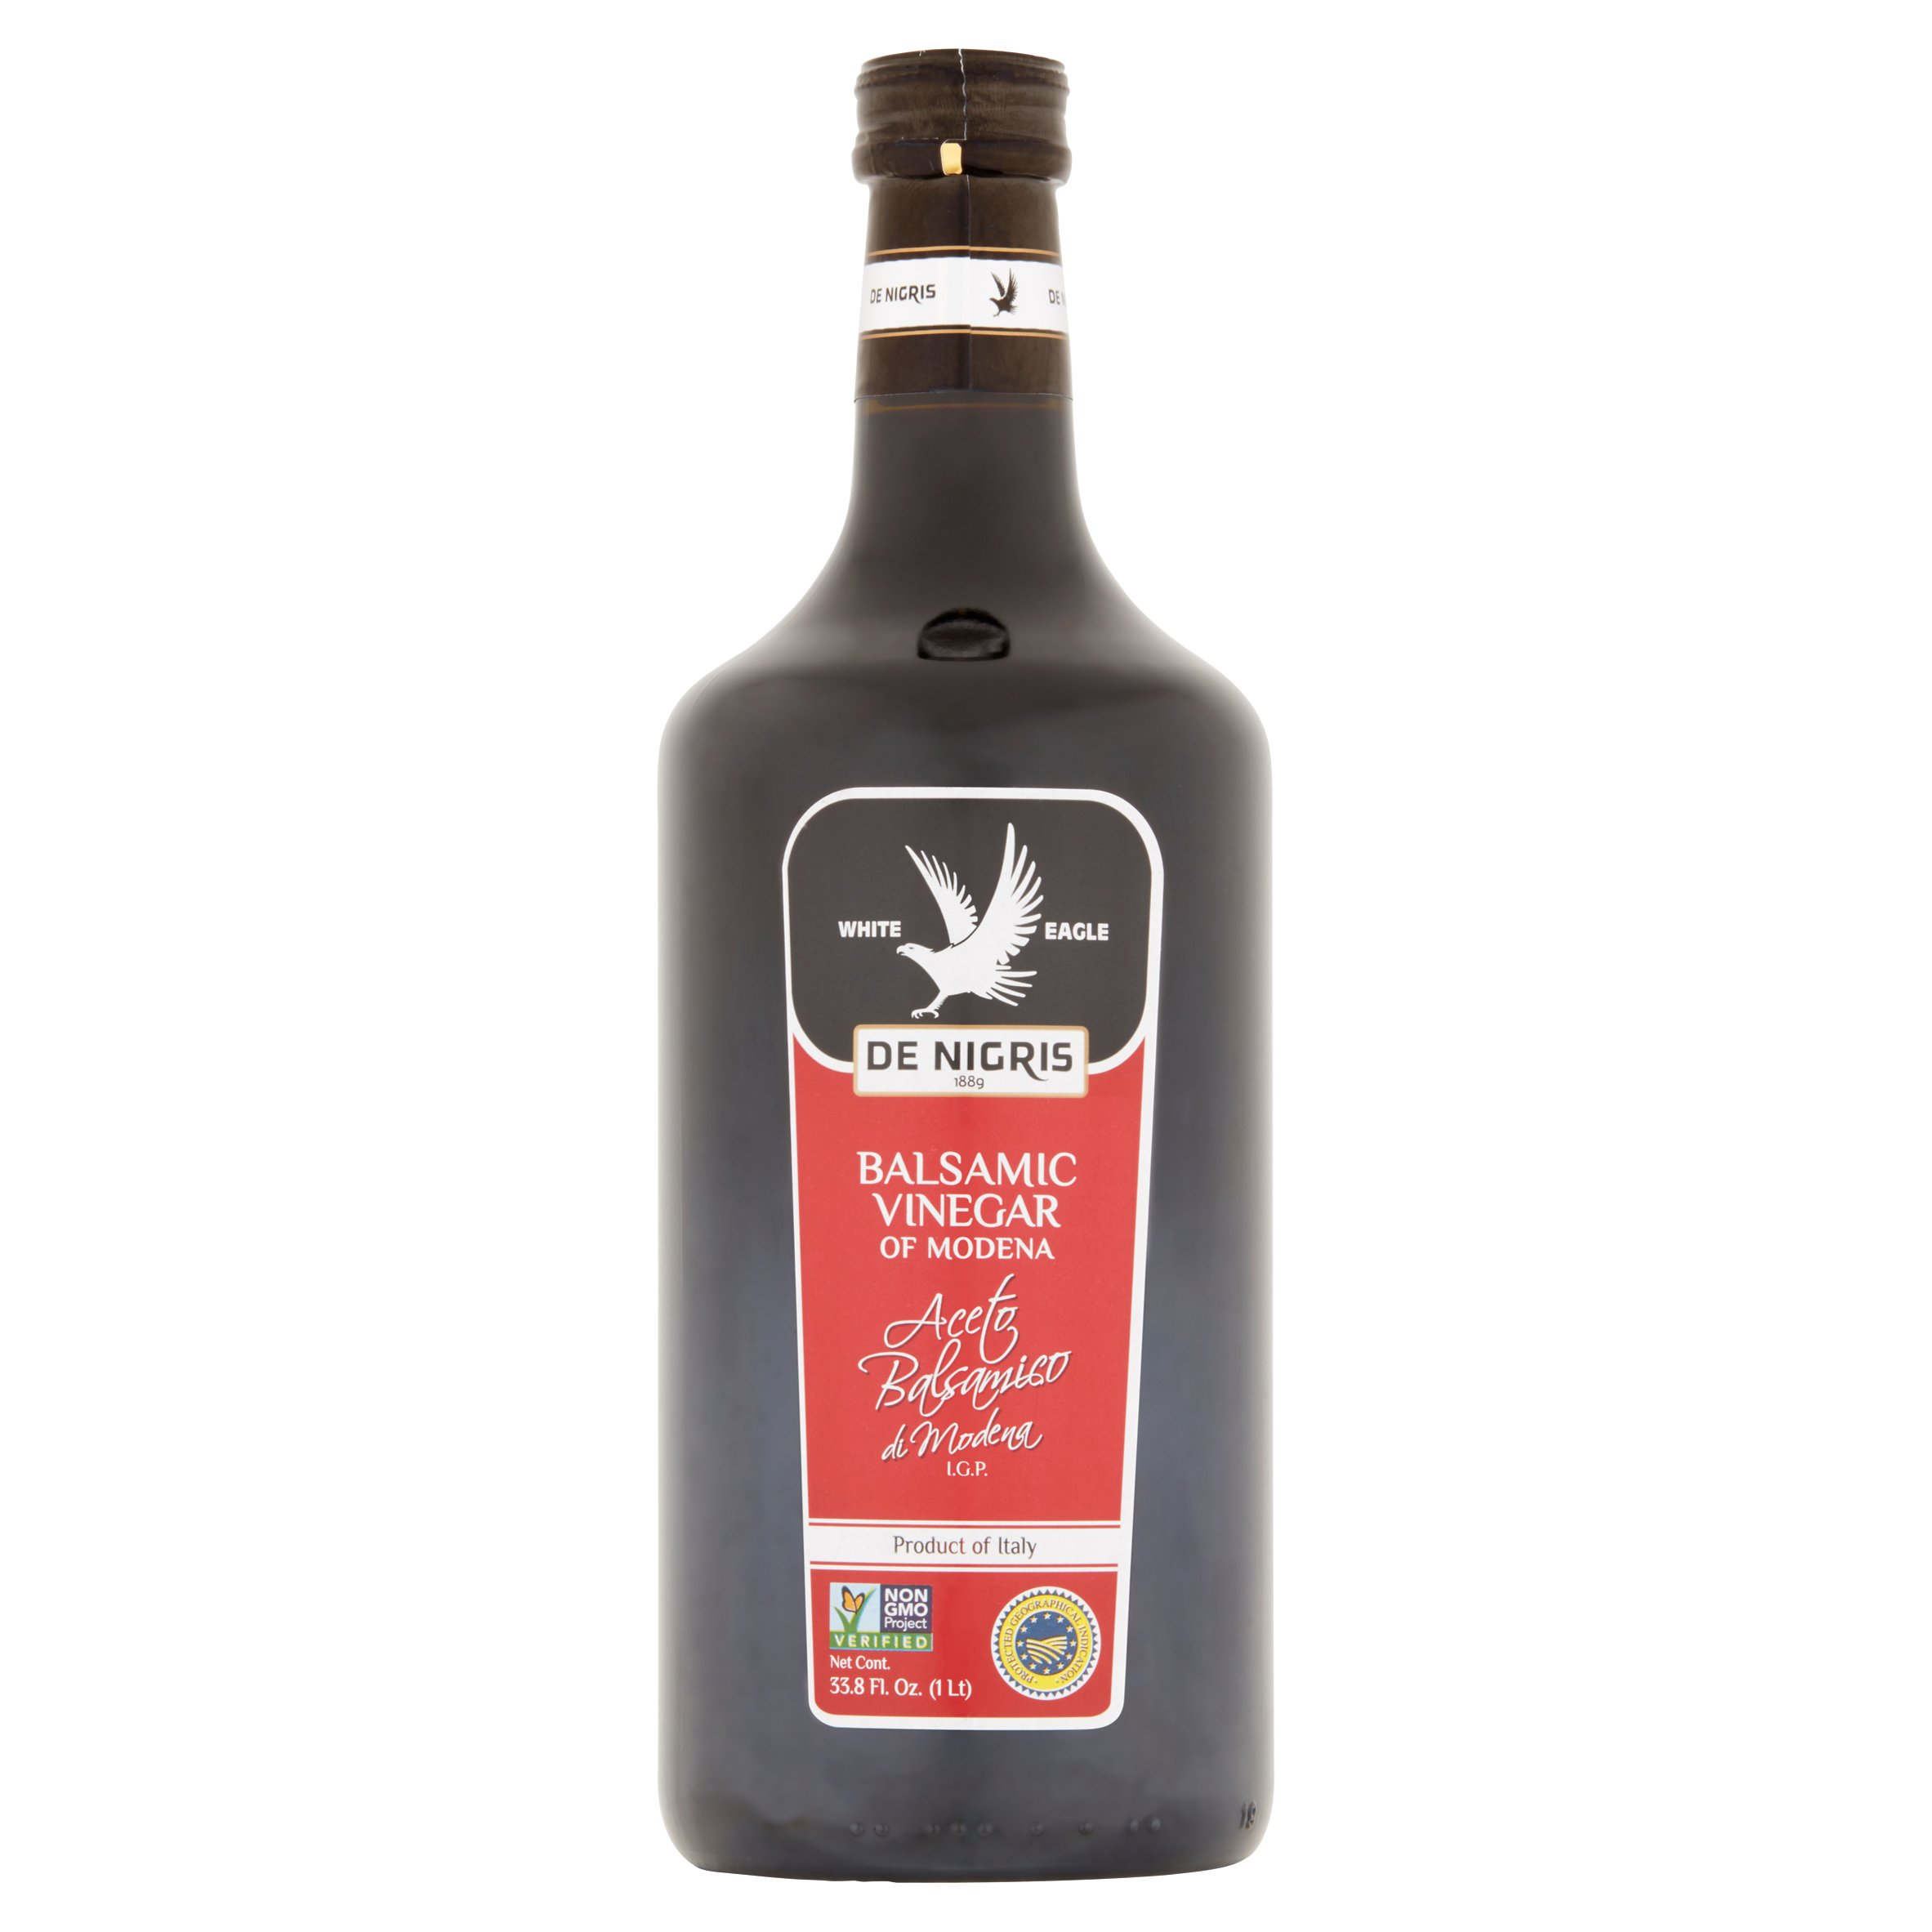 Balsamic Vinegar of Modena De Nigris, White Eagle by Wal-Mart Stores, Inc.